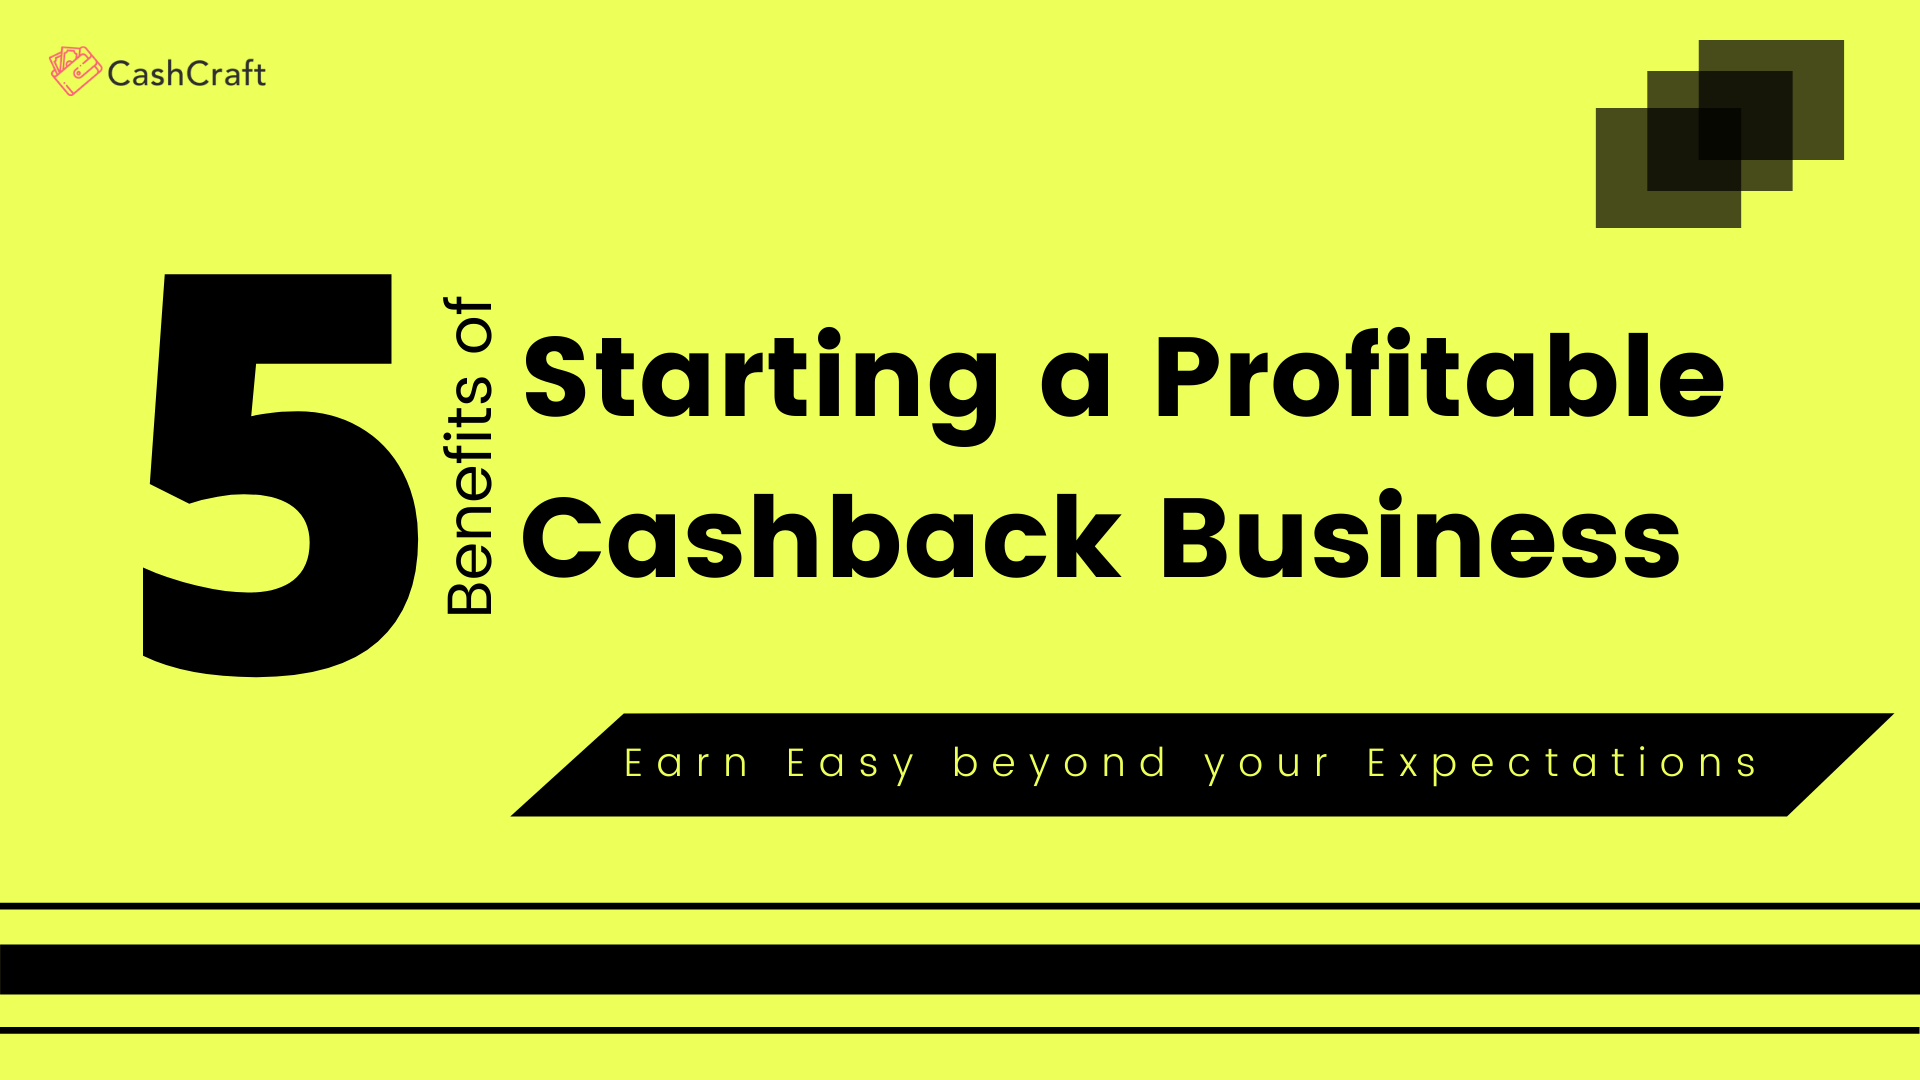 5 Major Benefits of Starting a Profitable Cashback Business